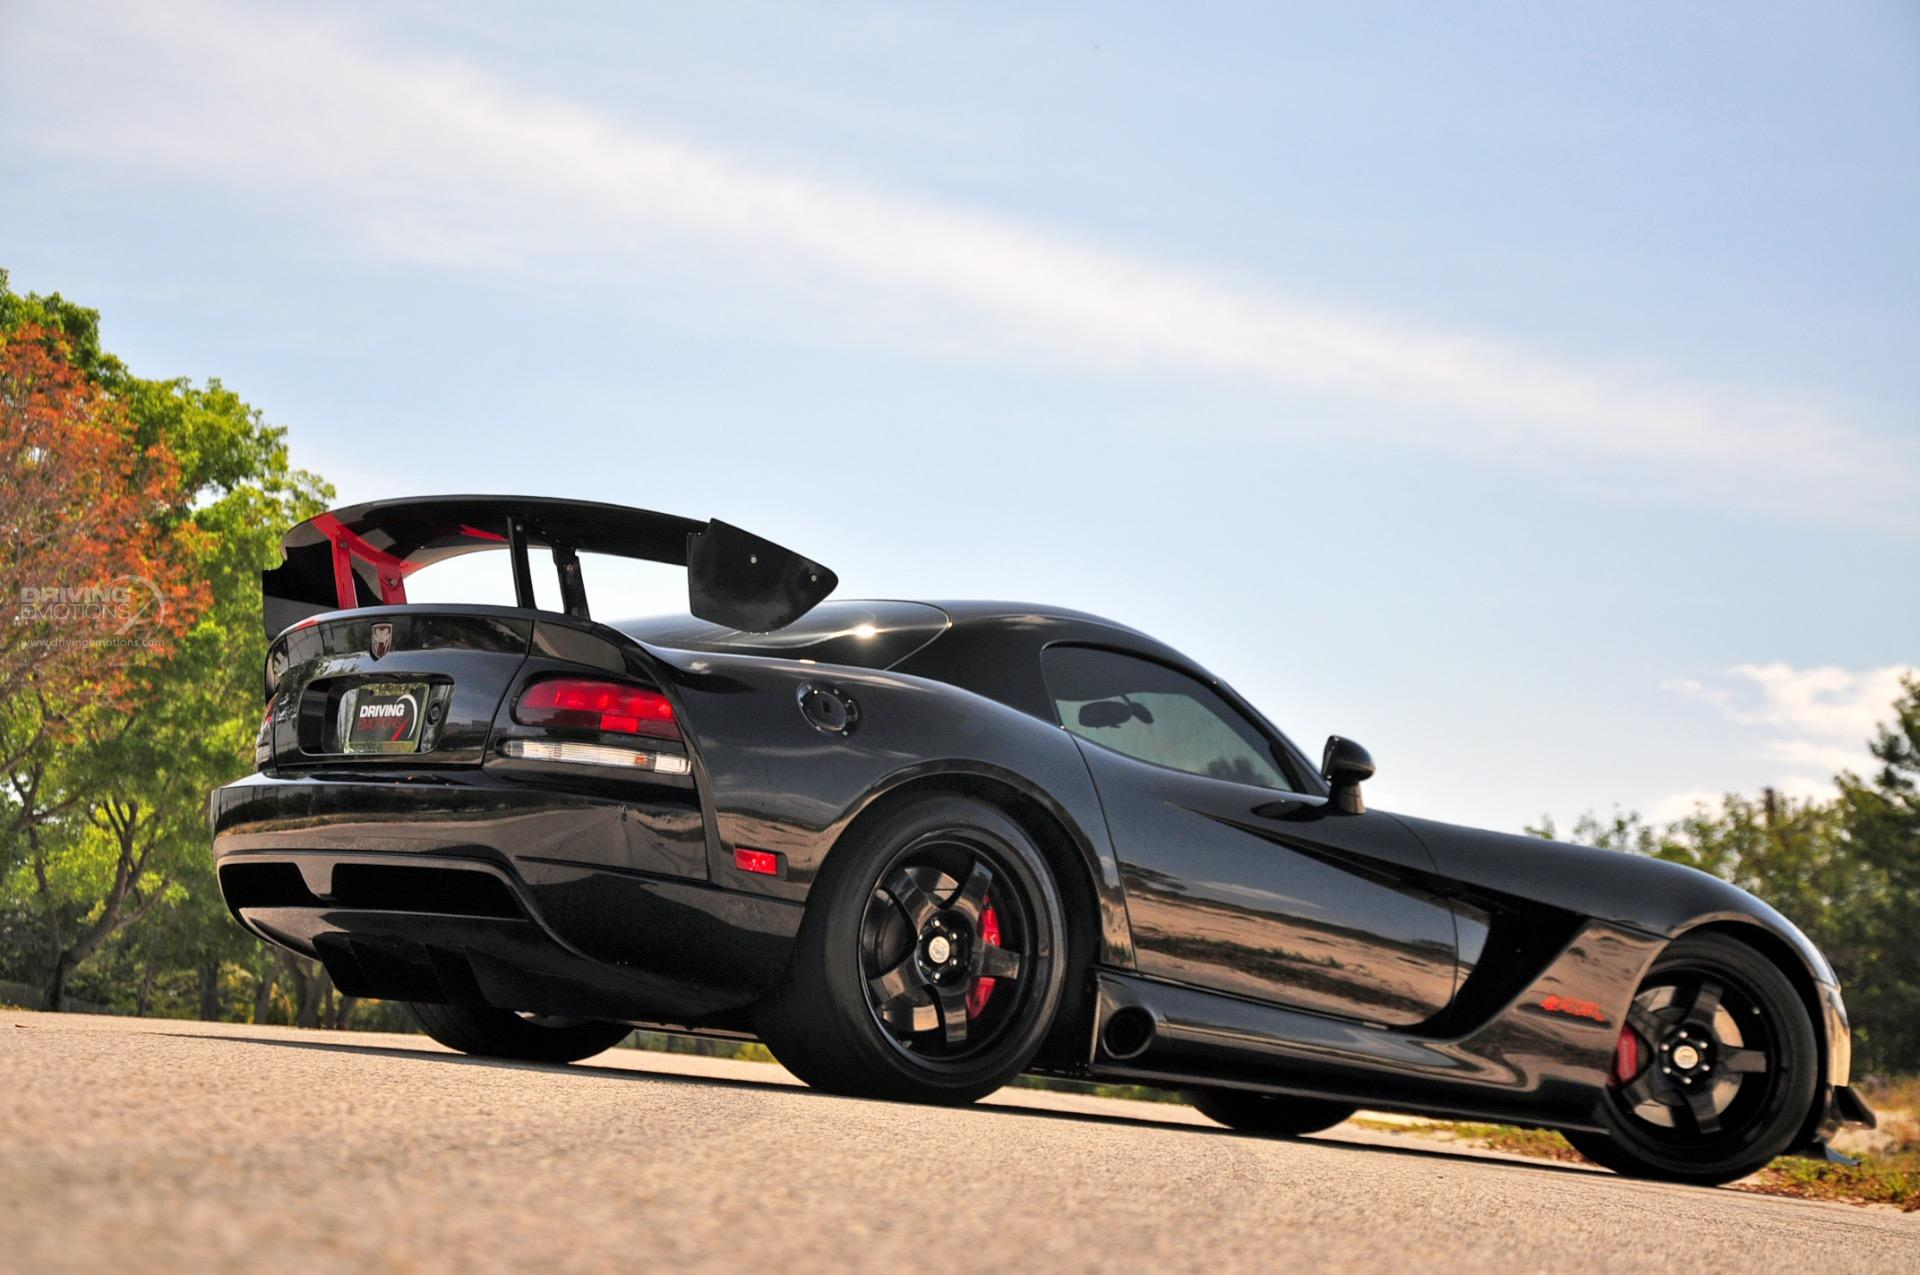 Used Car True Car >> 2008 Dodge Viper SRT-10 ACR SRT-10 ACR Stock # 5787 for sale near Lake Park, FL | FL Dodge Dealer